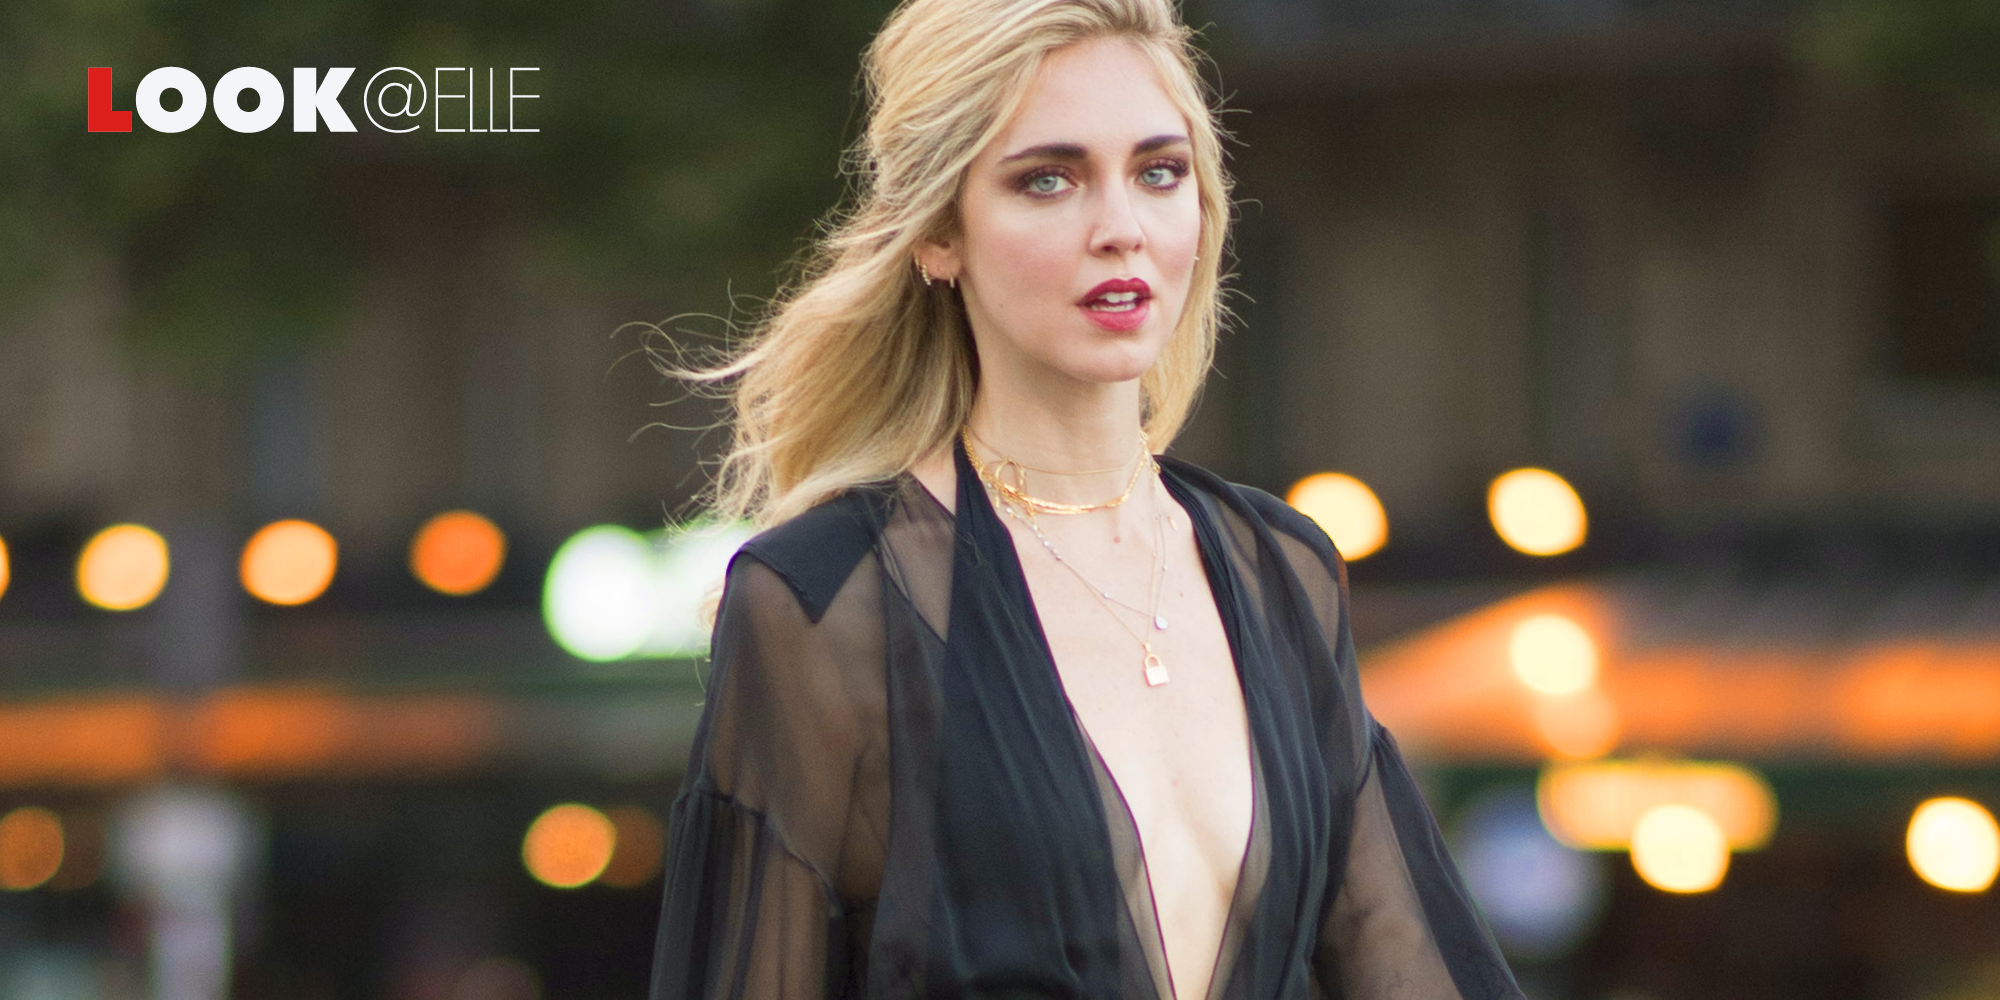 chiara ferragni look hot 2019